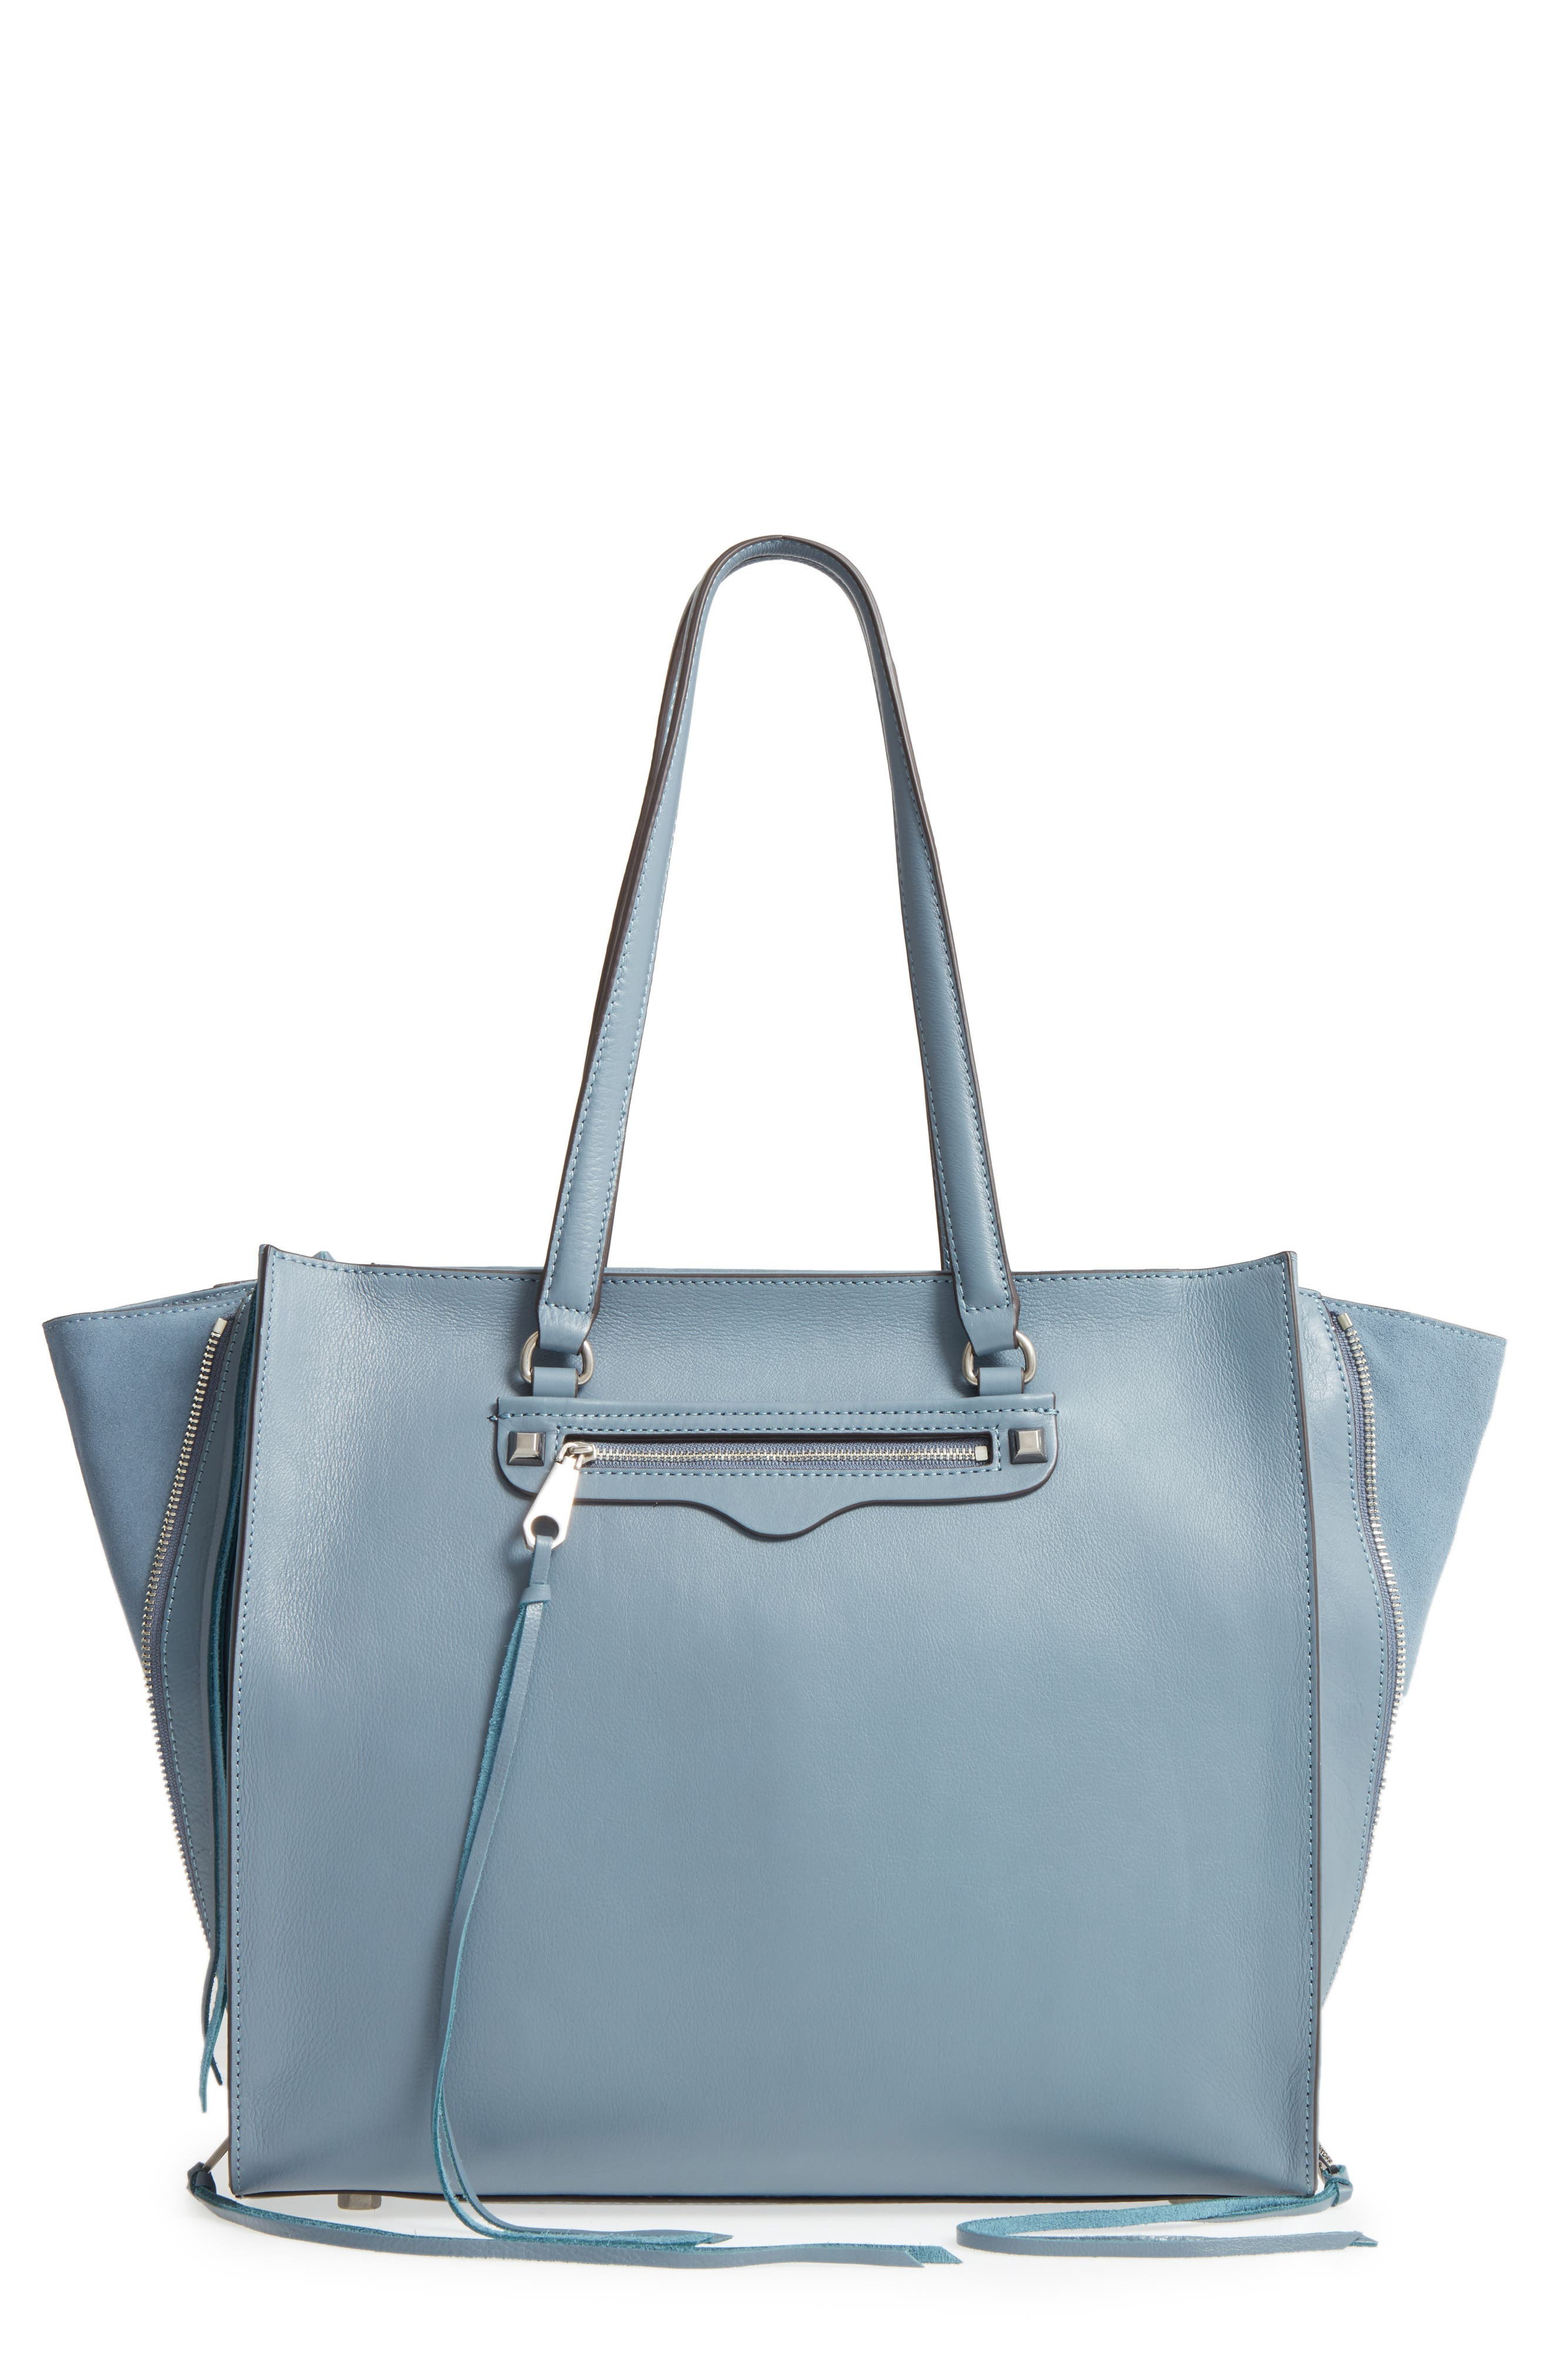 Always On Regan Leather Tote,                             Main thumbnail 1, color,                             400